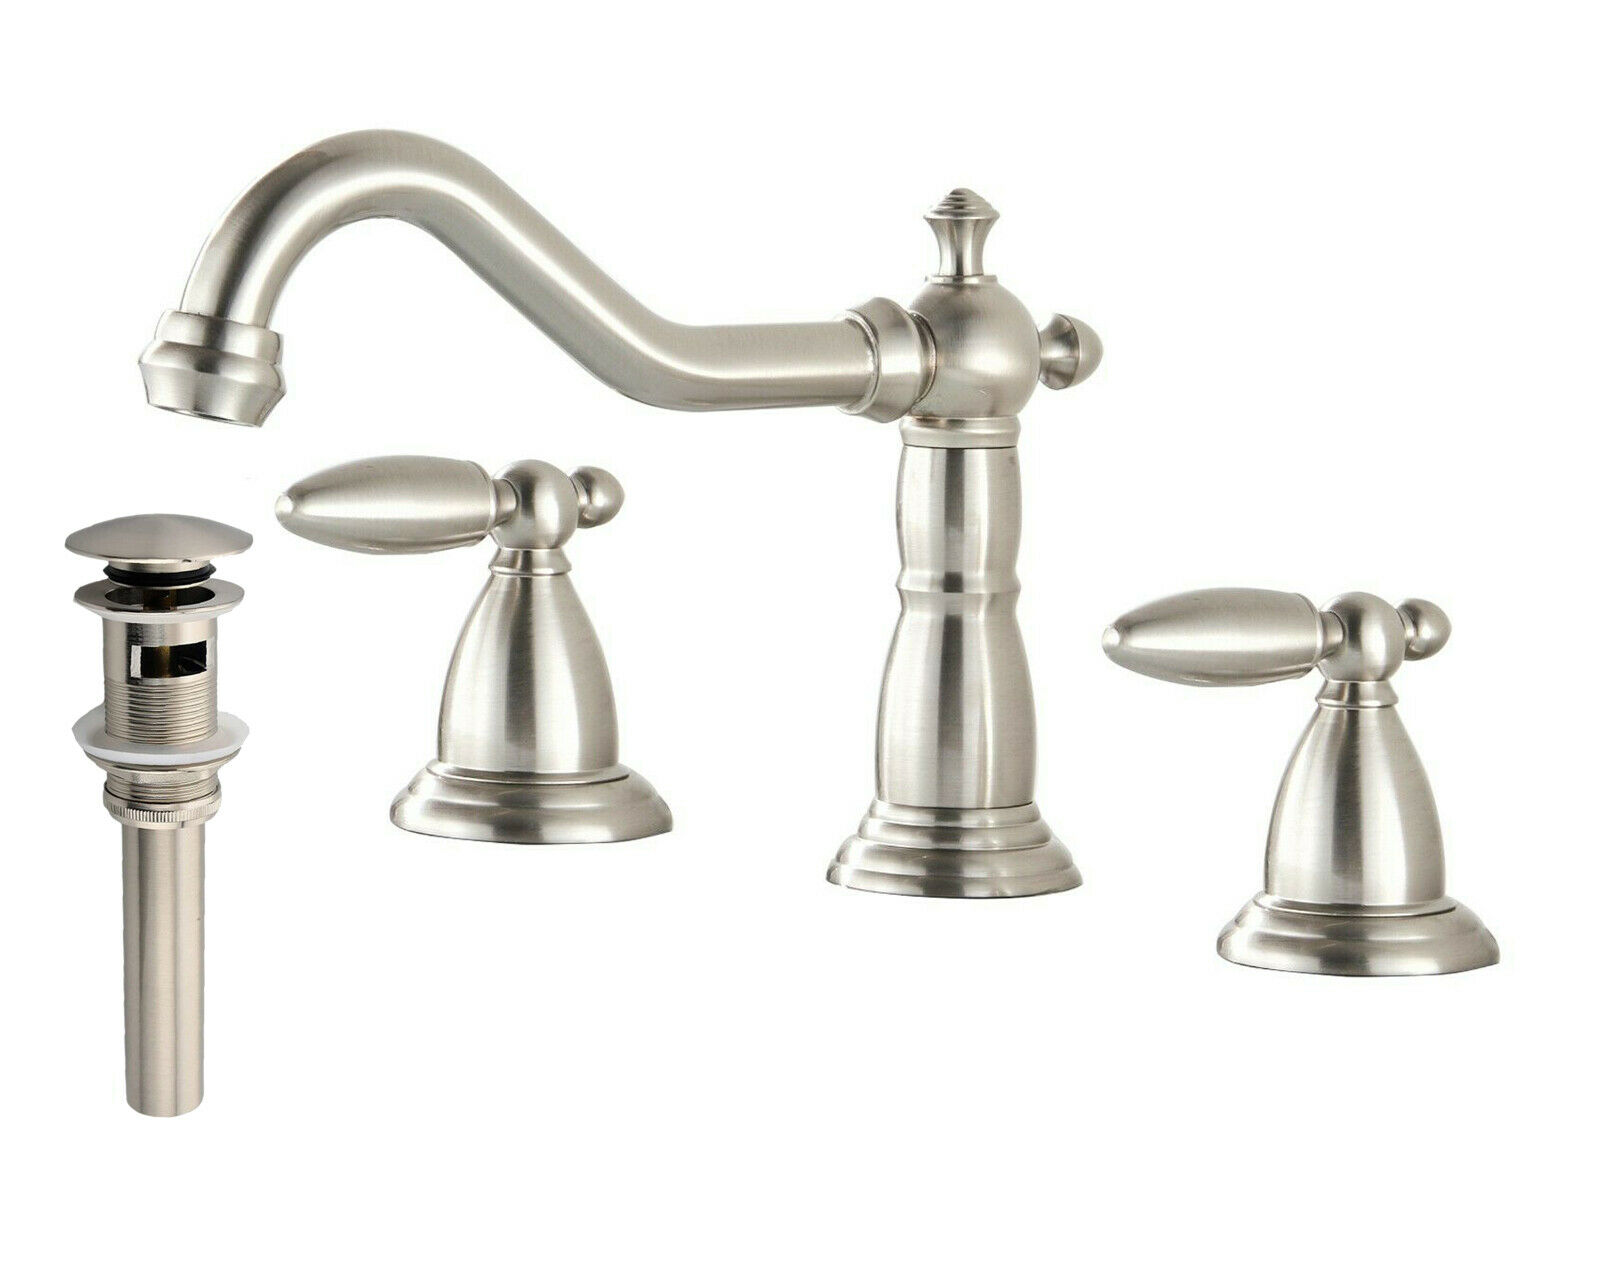 9 Of 11 Waterfall Spout Brushed Nickel Bathroom Faucet Tub Sink Mixer Tap  Deck Mount Tap